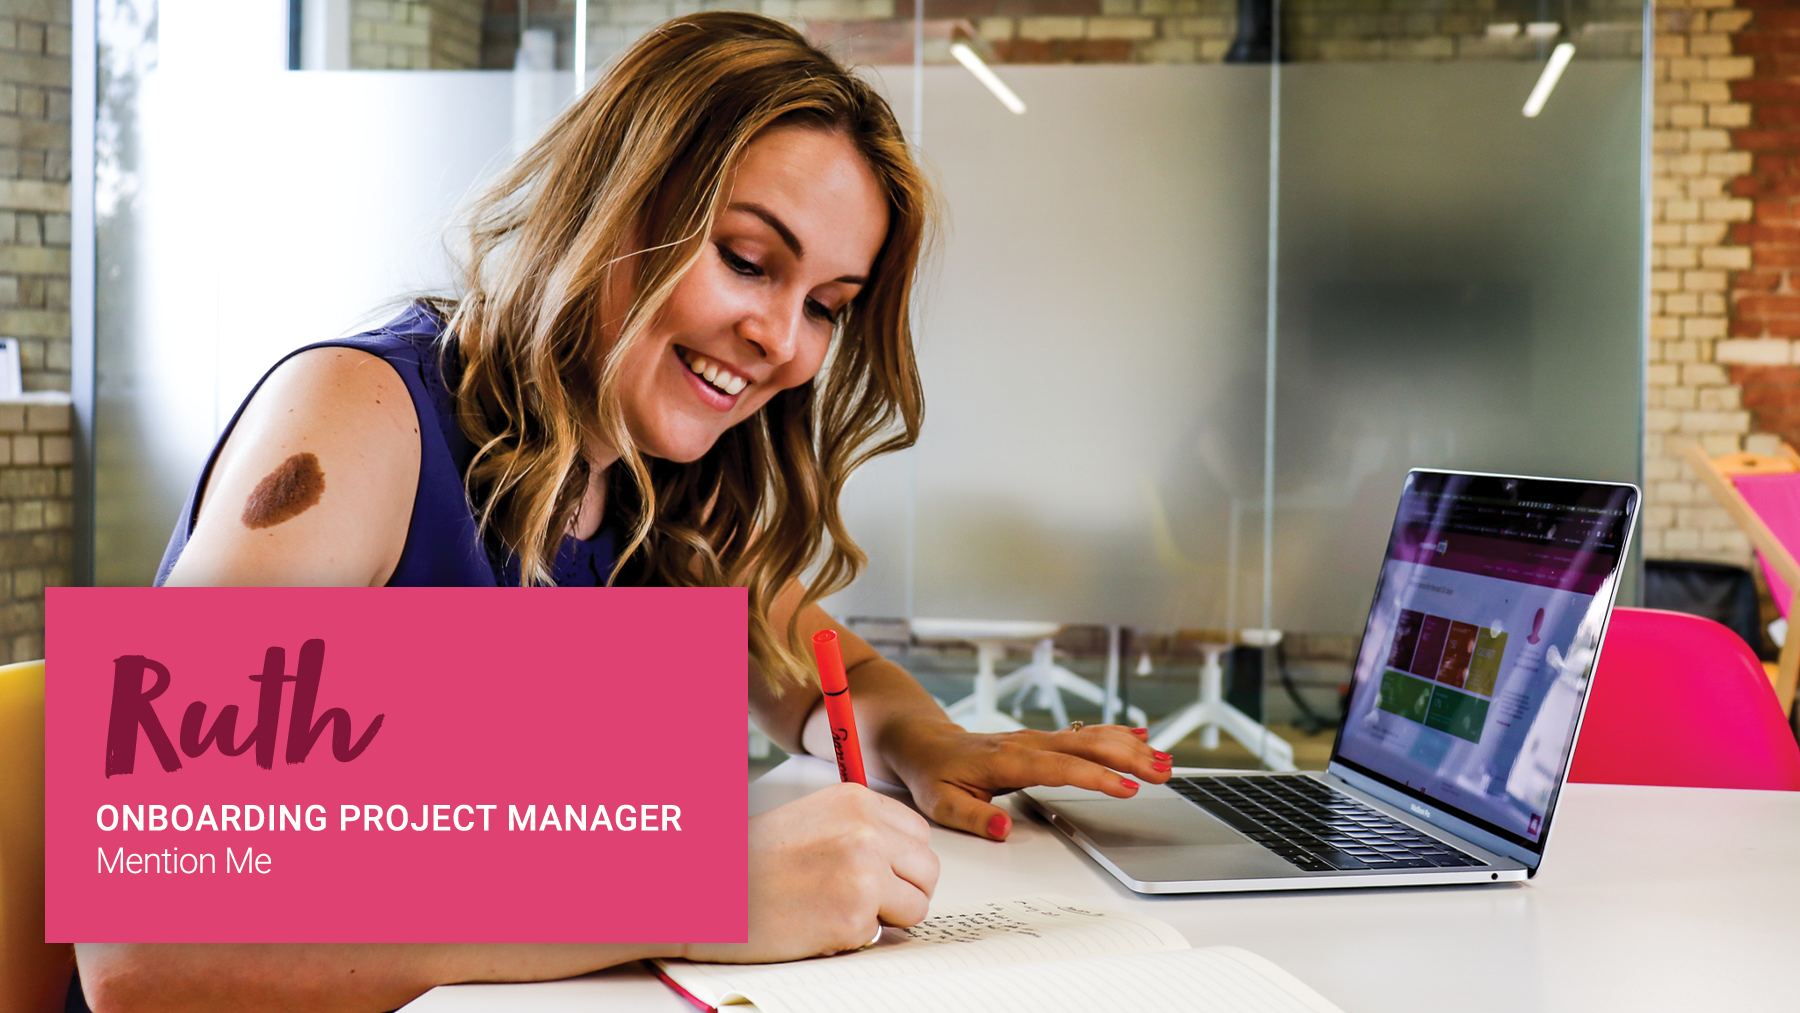 Ruth, Onboarding Project Manager